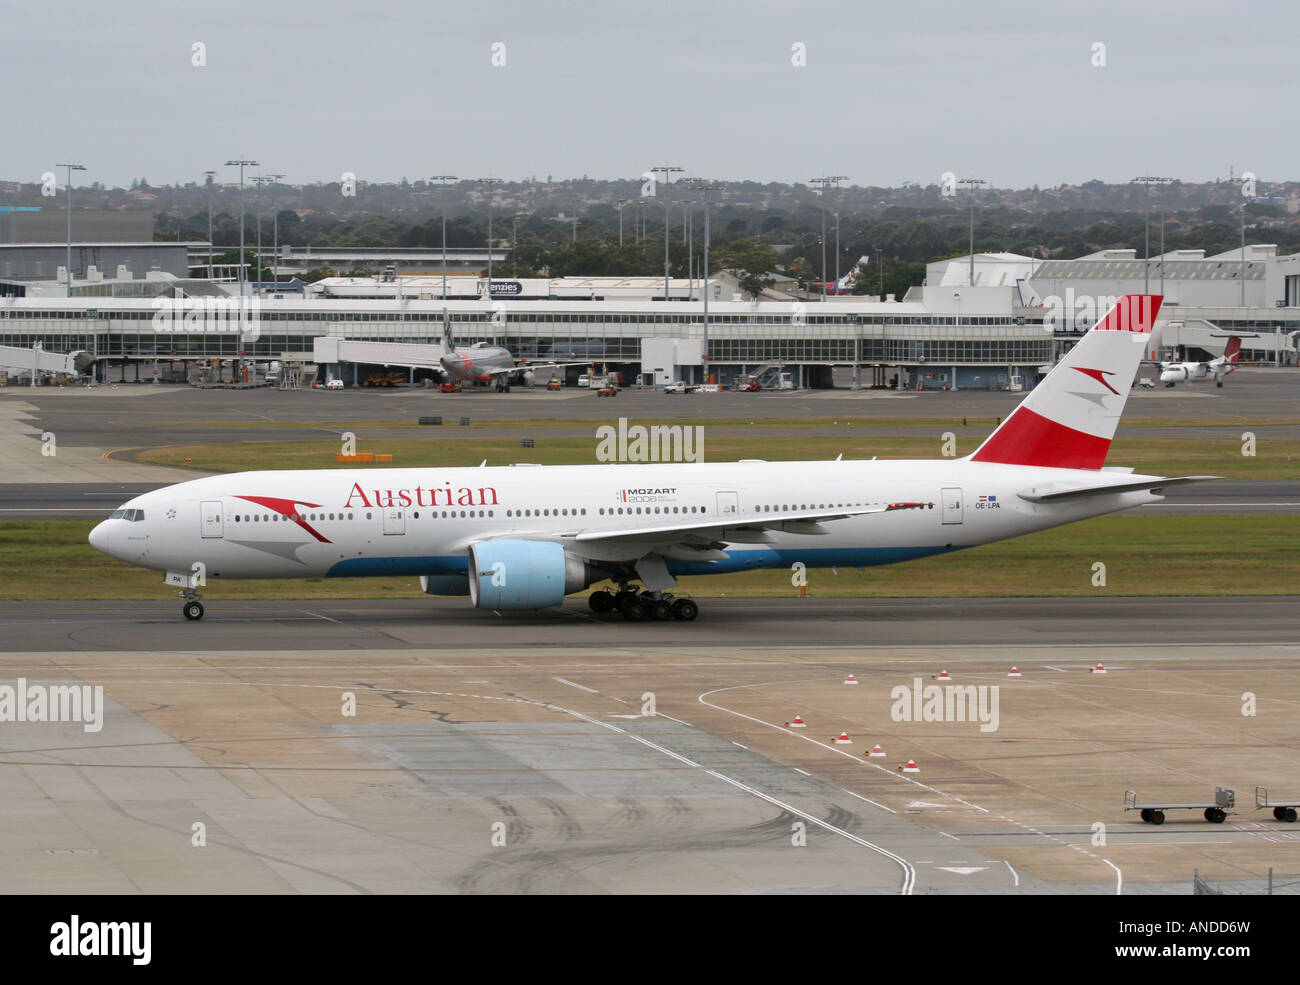 Long haul air travel. Austrian Airlines Boeing 777-200ER widebody passenger jet plane taxiing at Sydney Airport, - Stock Image